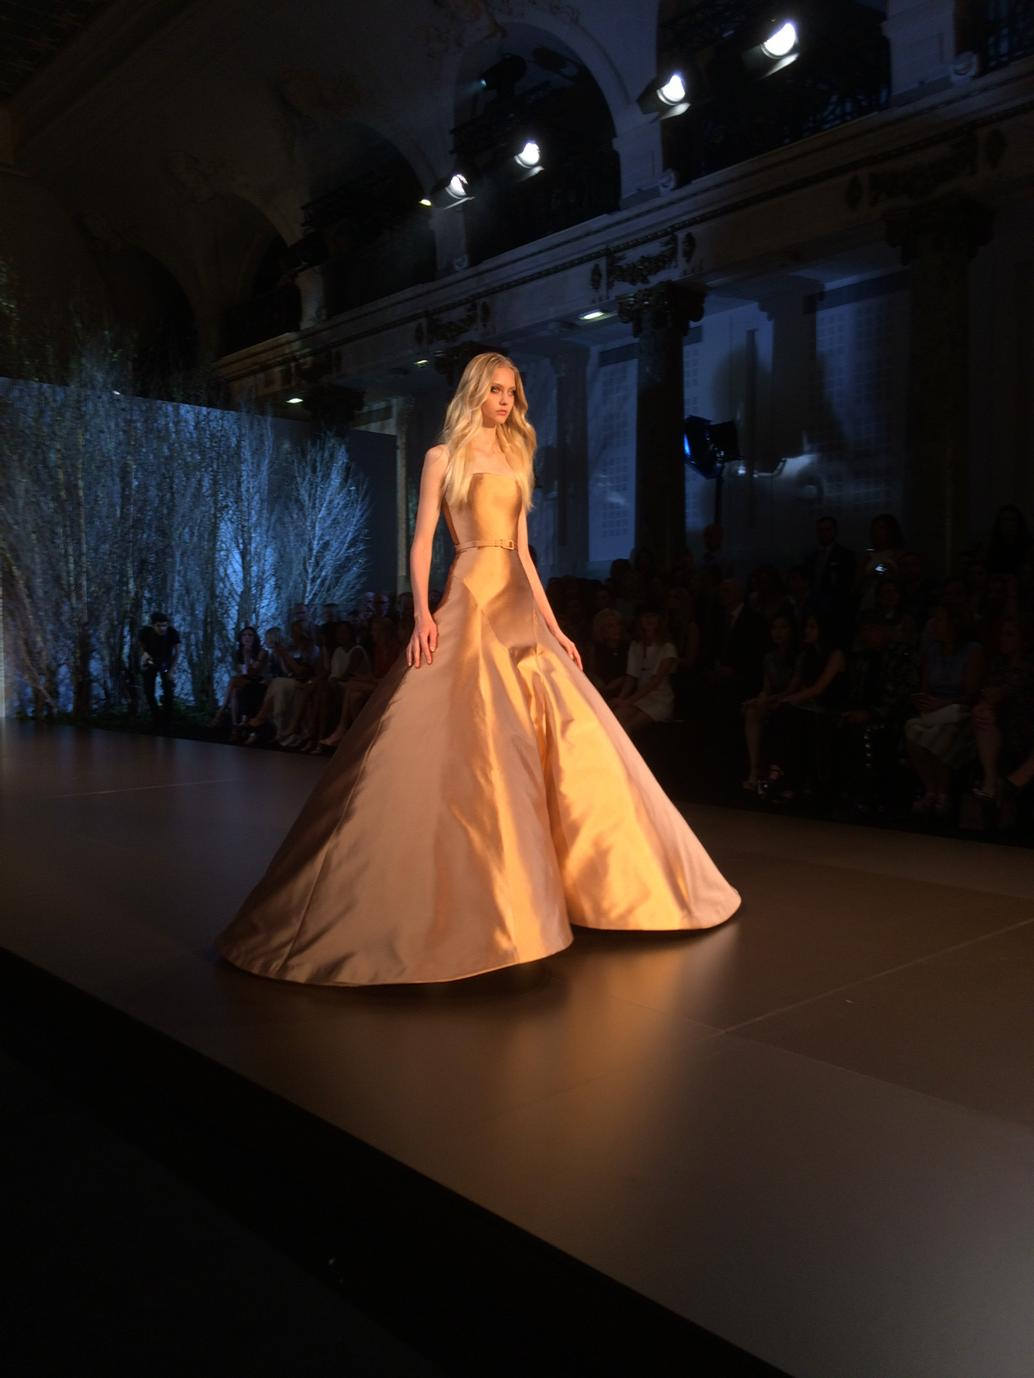 RT @VVFriedman: How would you get through a door in this @Ralphandrusso #couture dress? You have to go sideways. http://t.co/8Jbtrlmia7